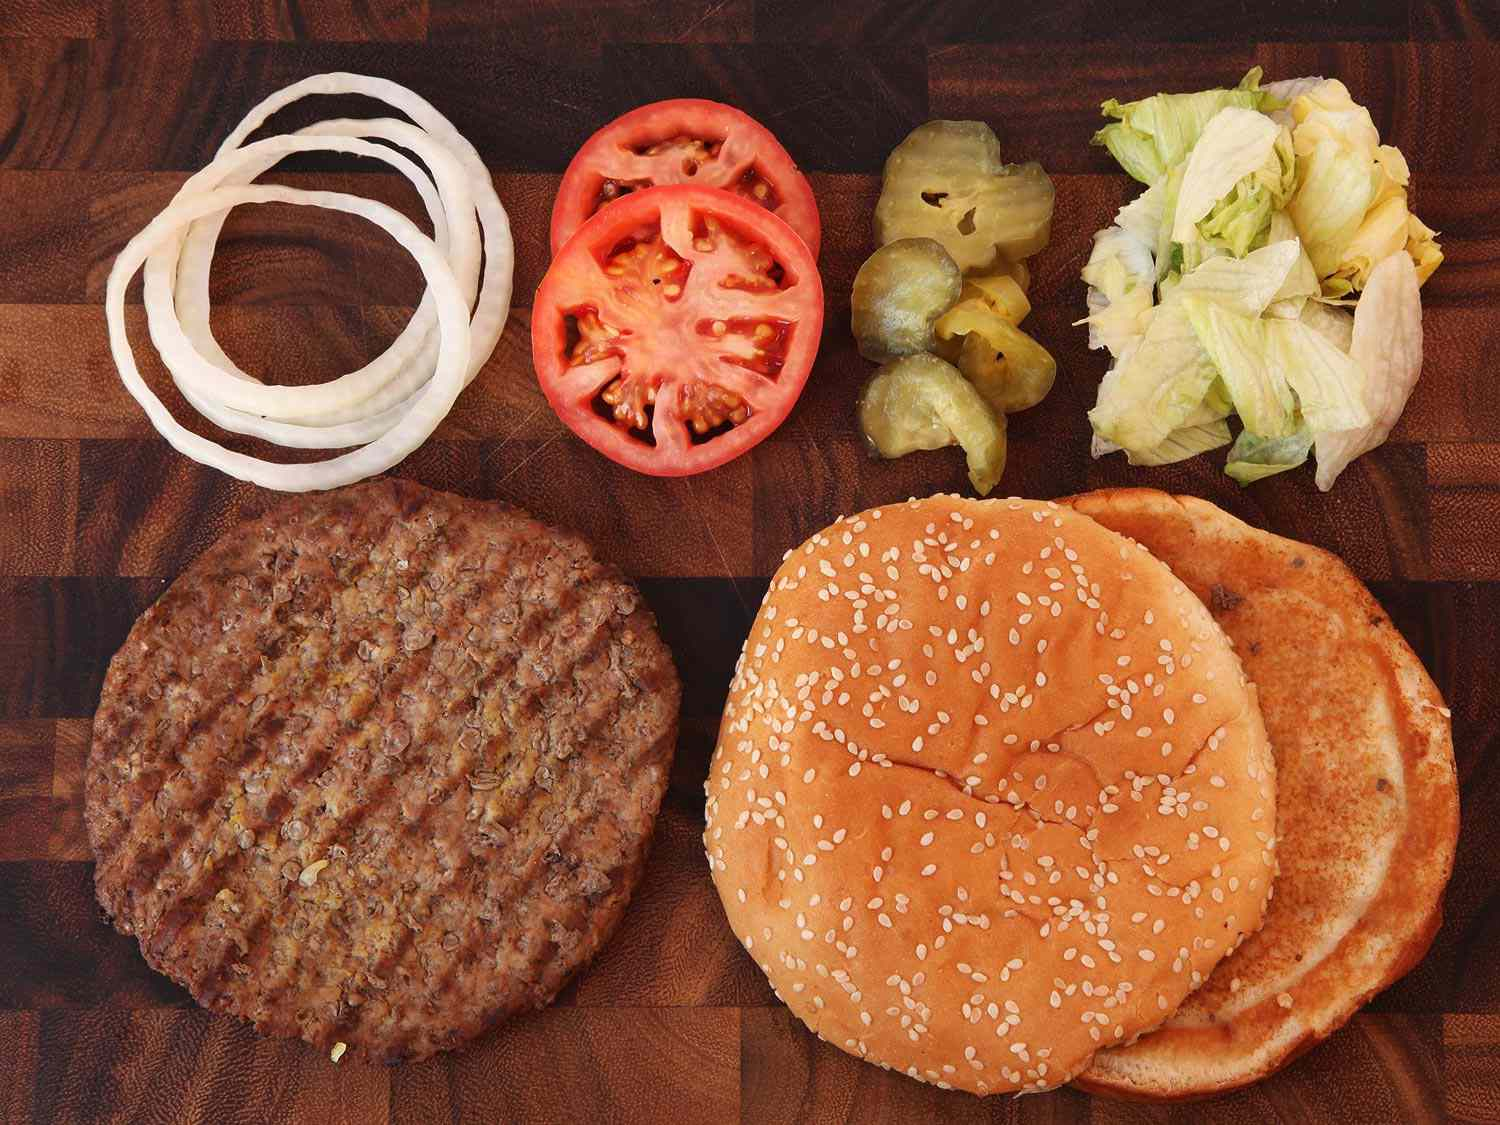 Toppings for a homemade whopper on a wood cutting board.